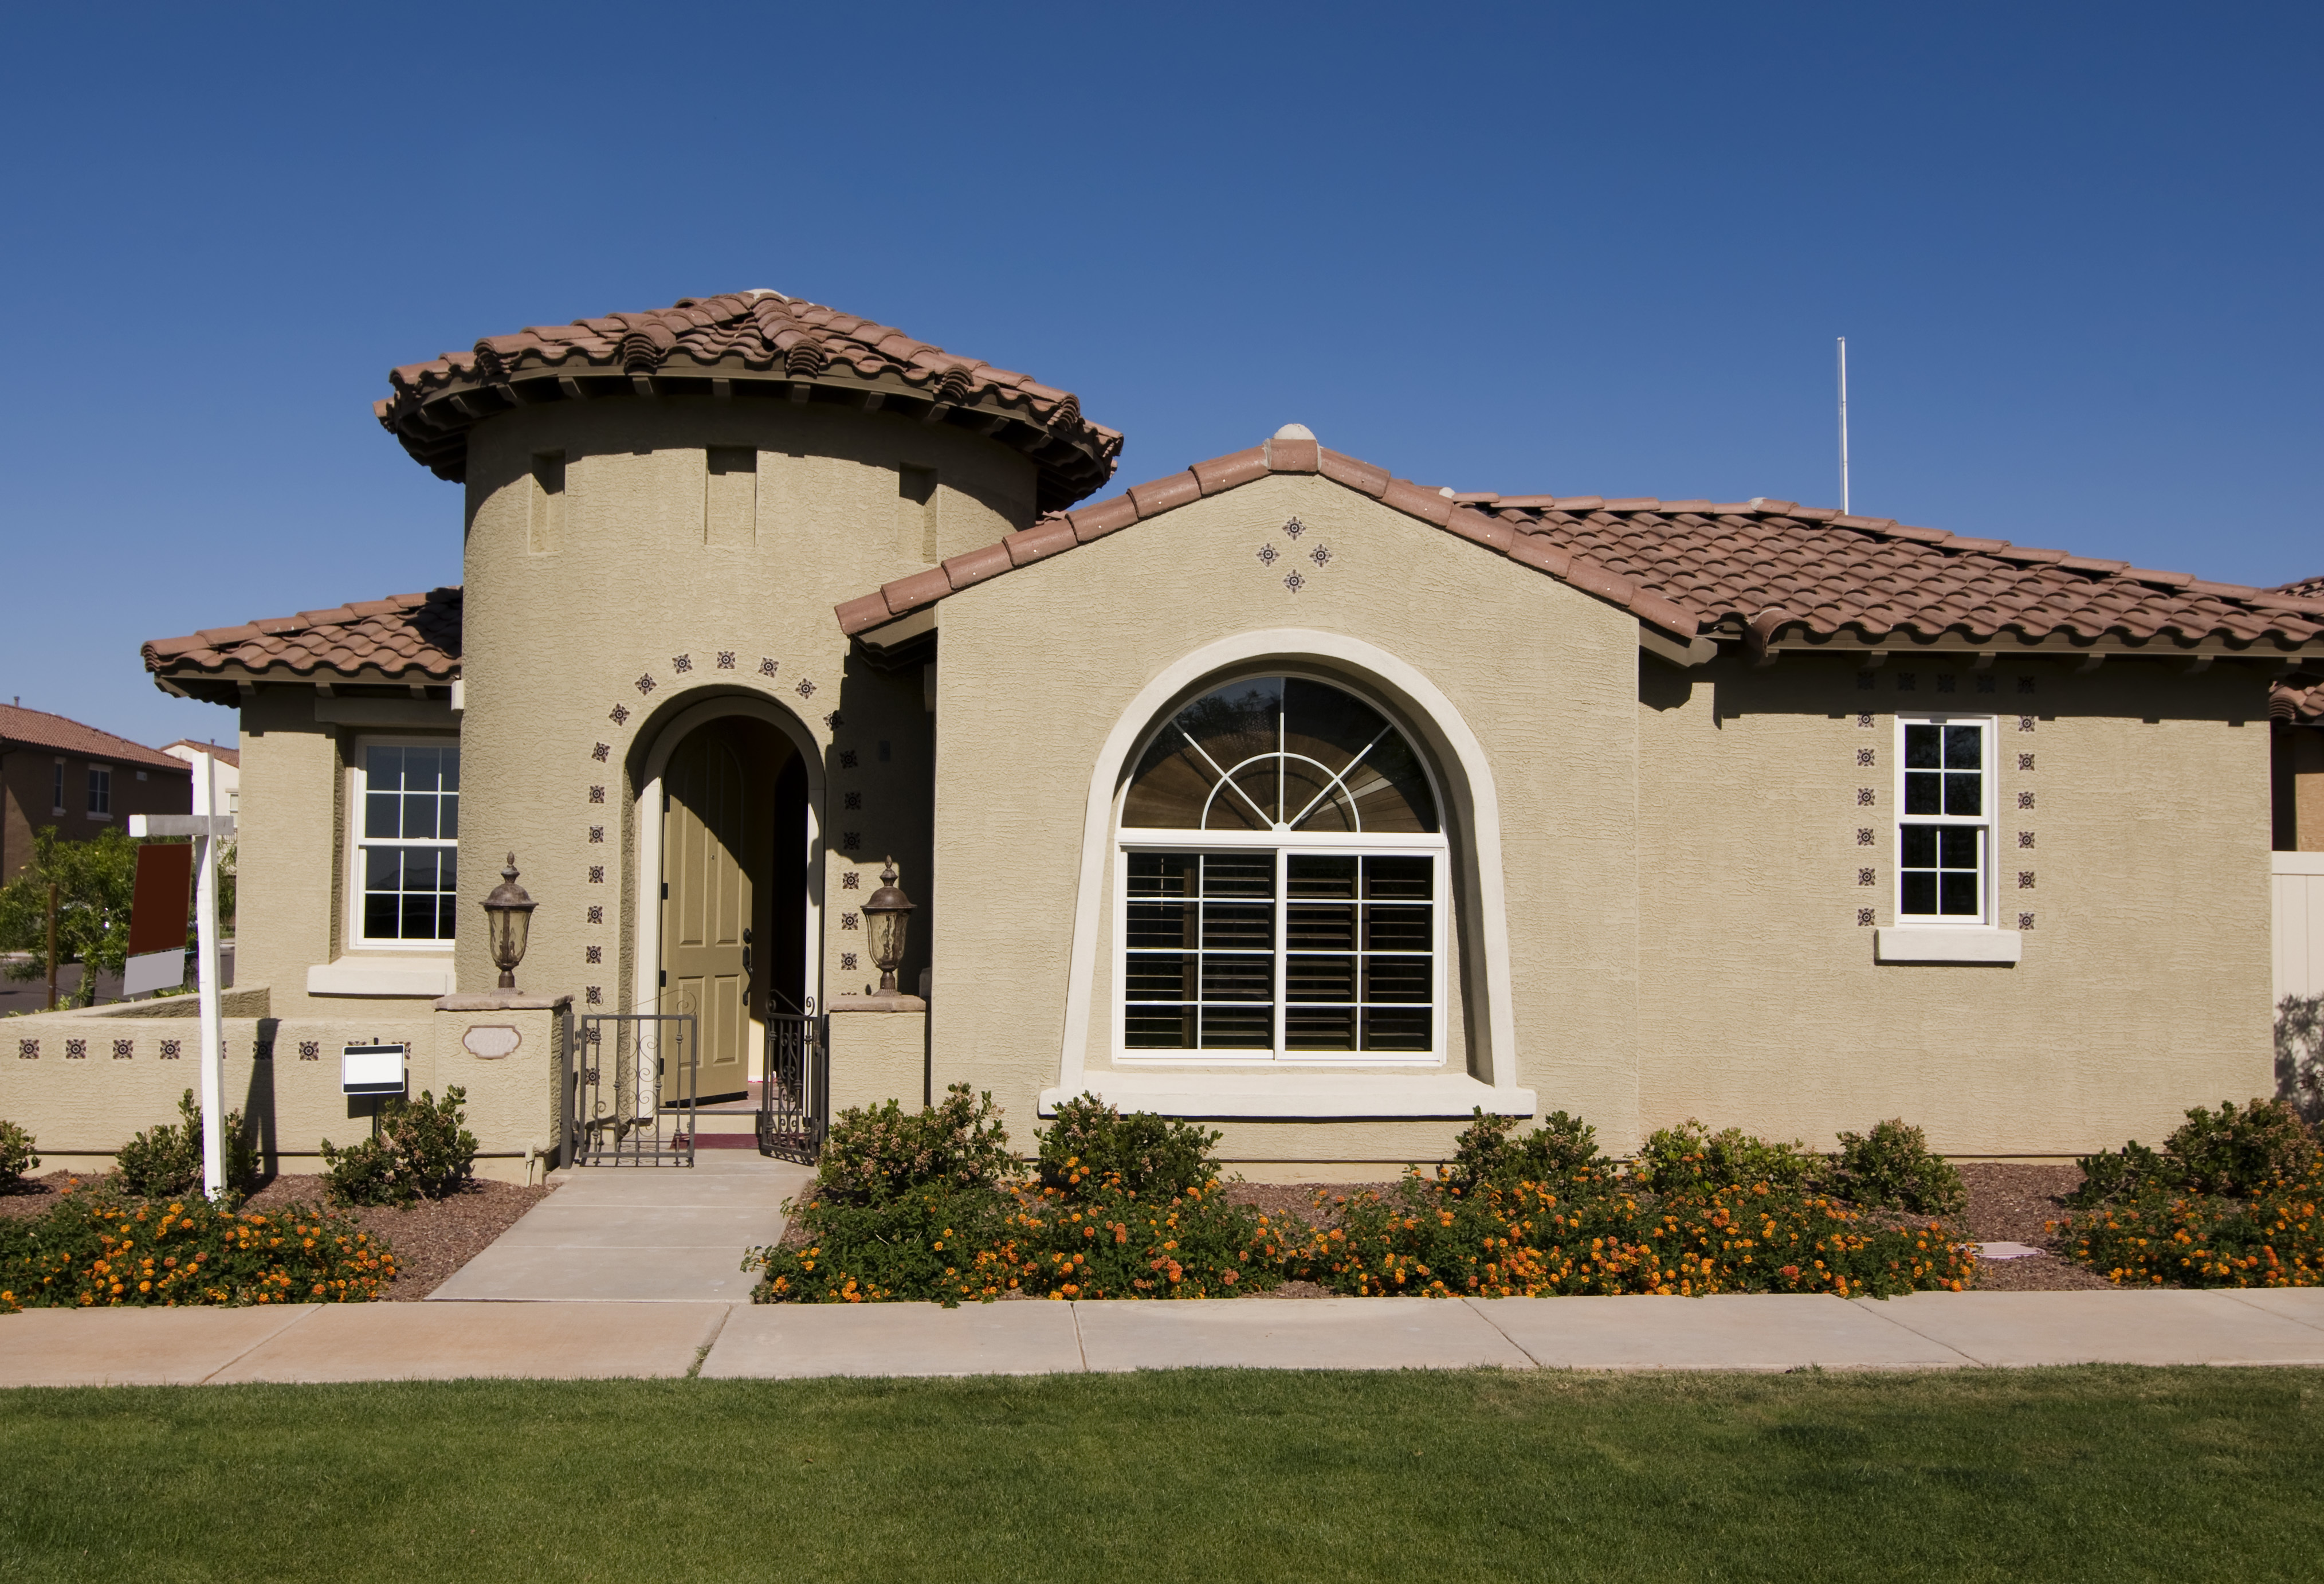 Exterior Brown Tan And Mediterranean Stucco Stone House